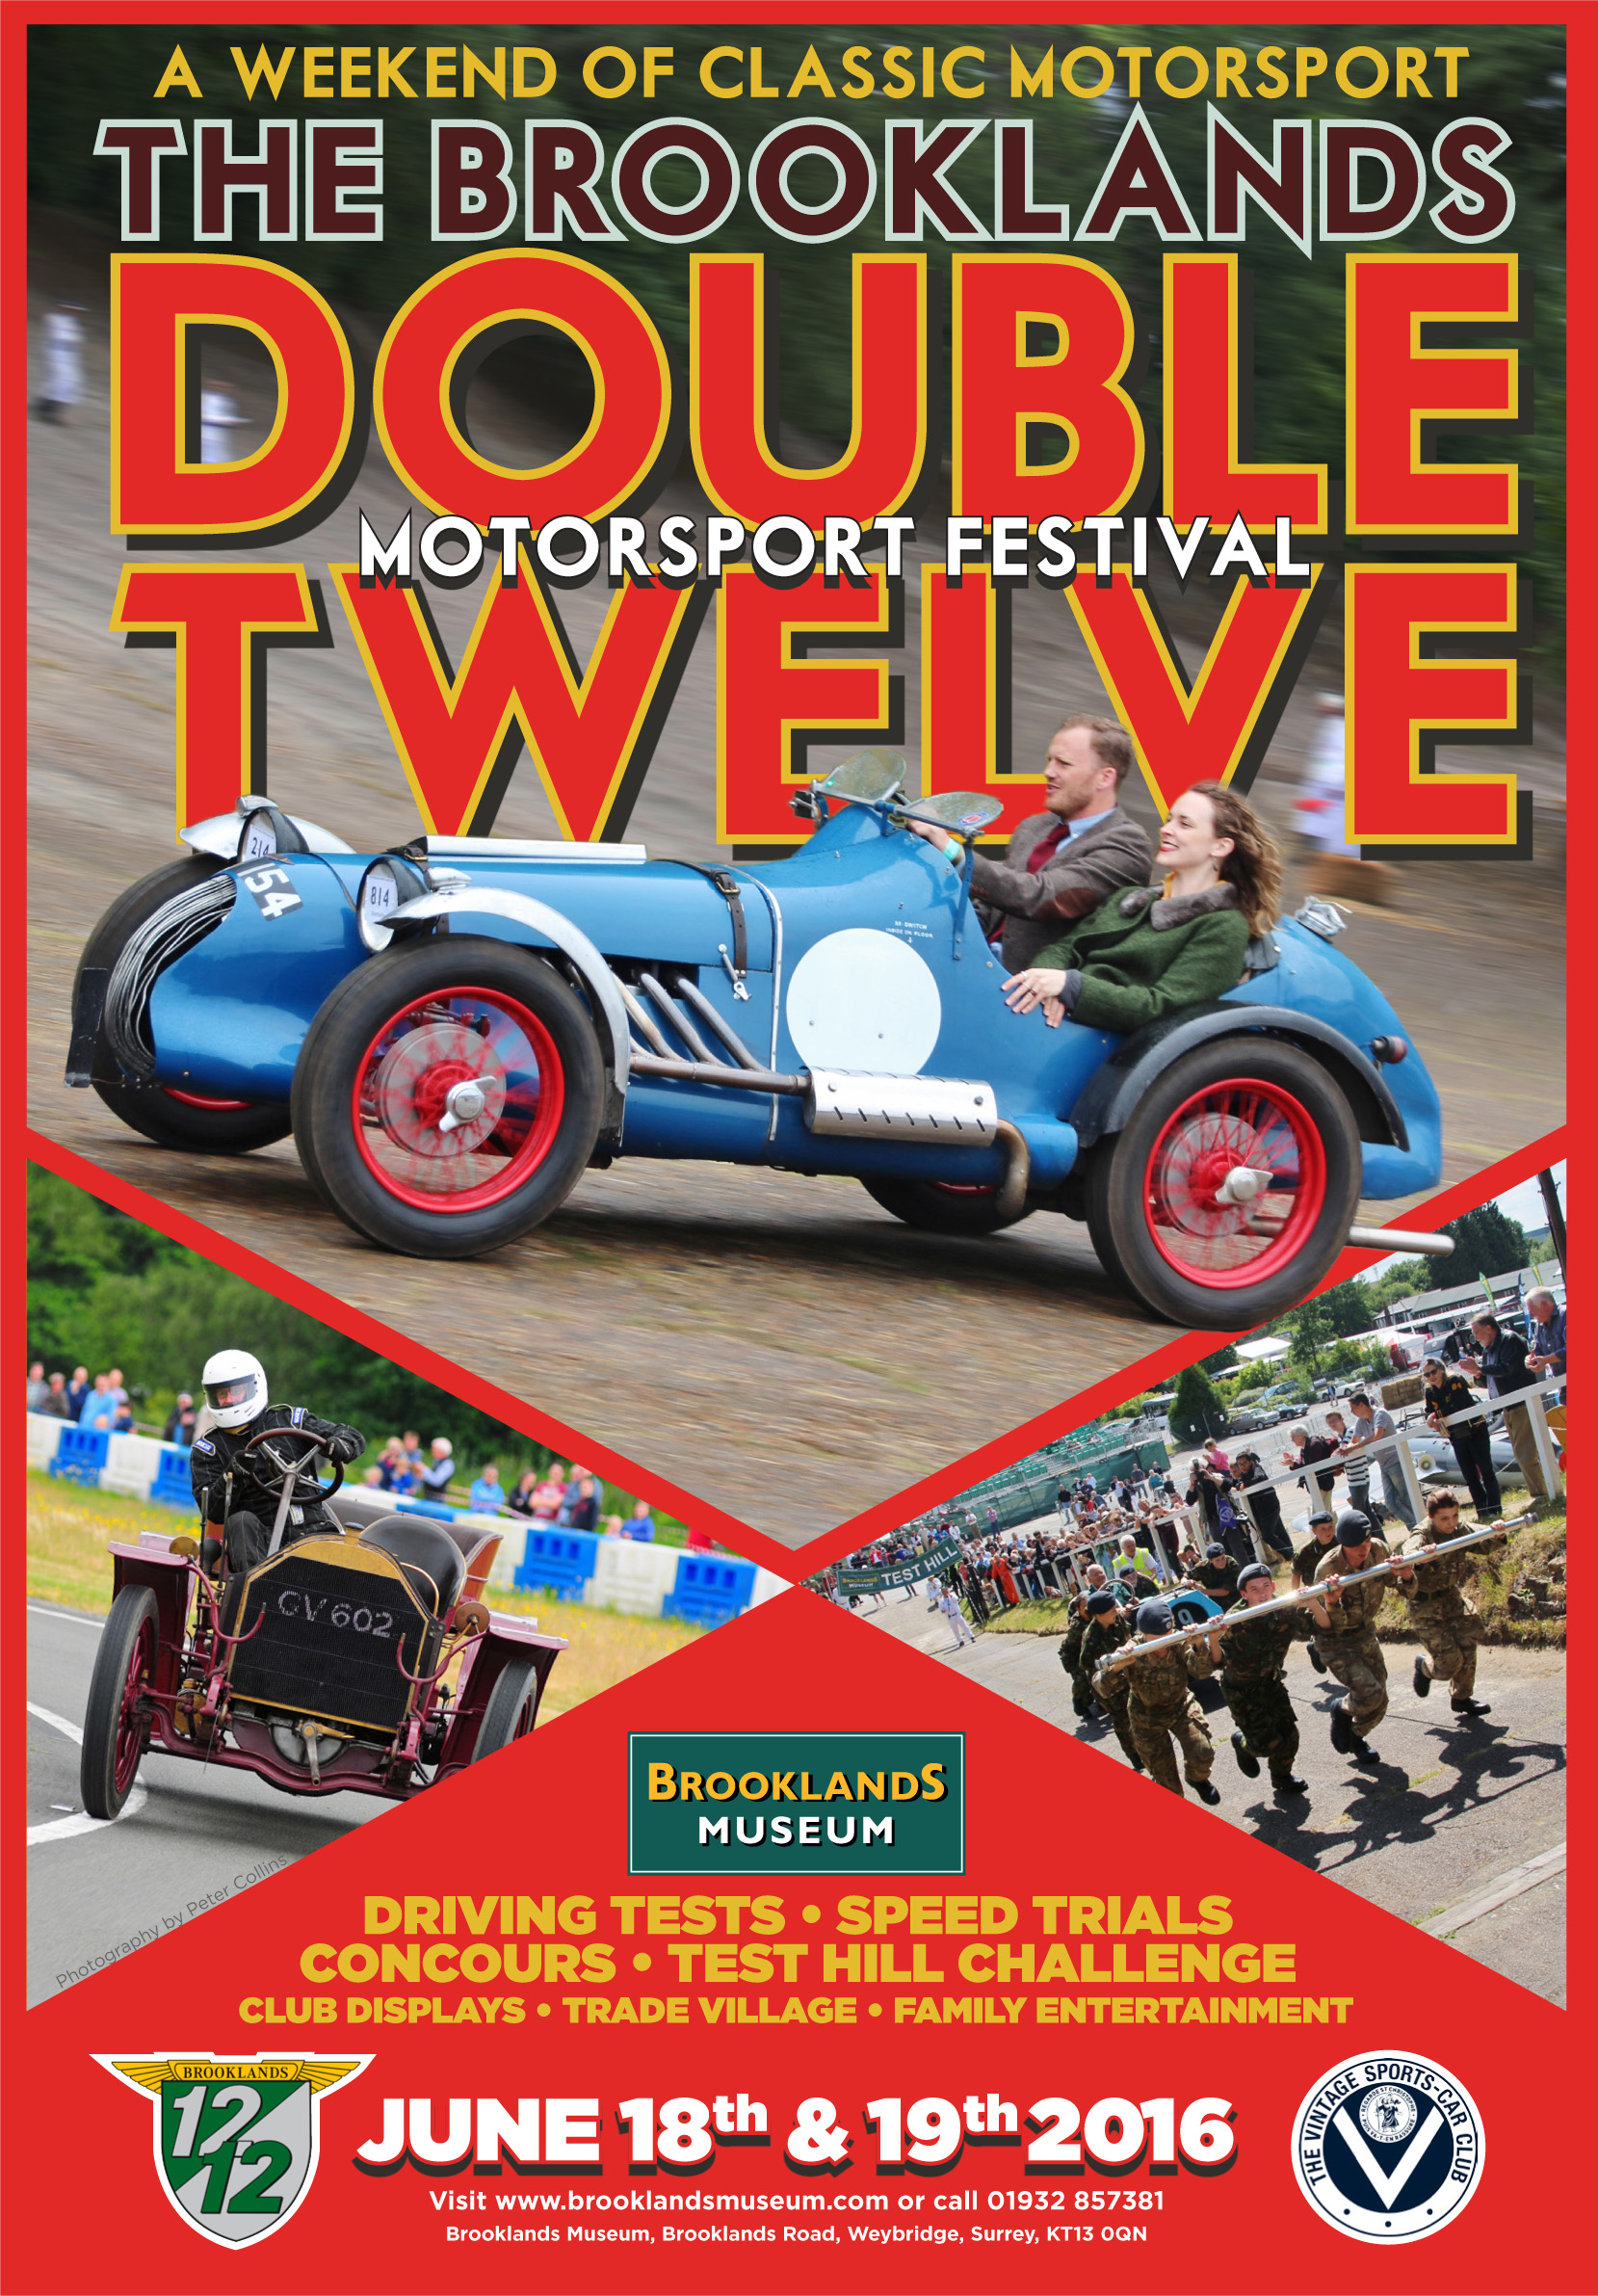 VSCC and Brooklands Join Forces for the Double Twelve Motorsport Festival this weekend!  cover